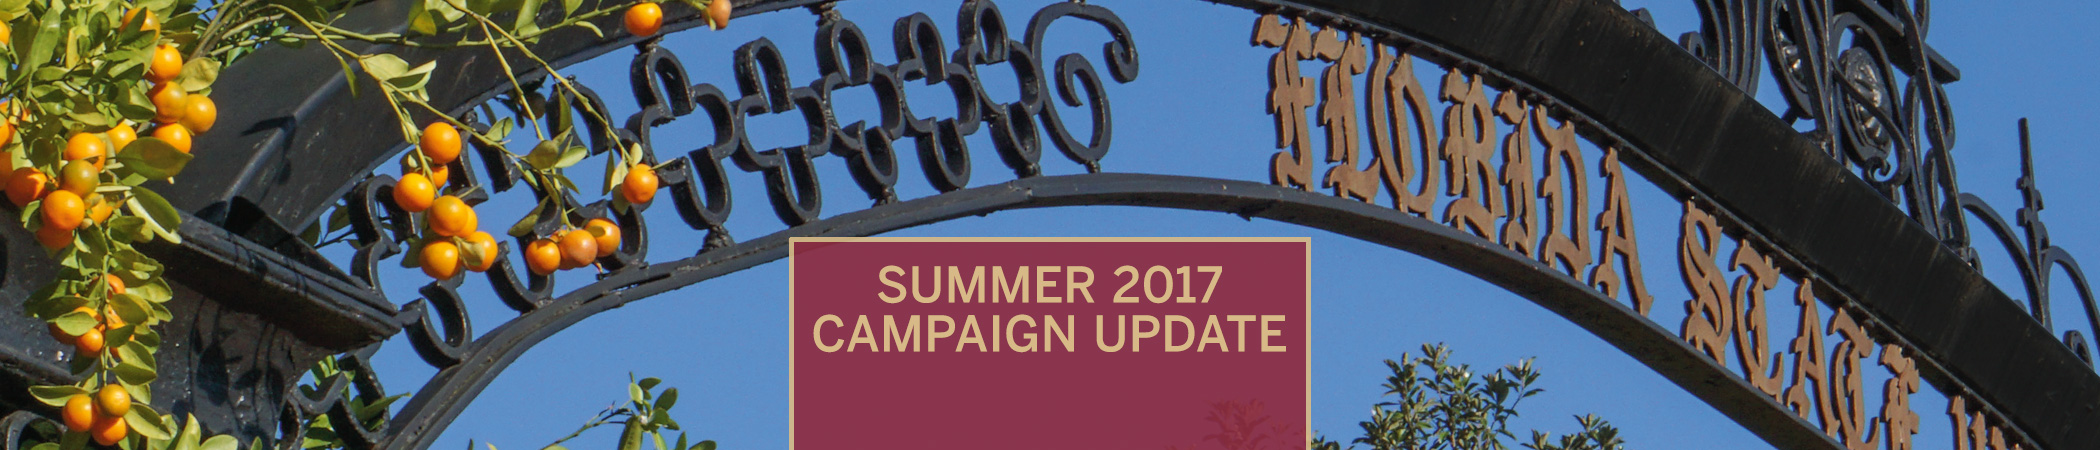 Raise the Torch Summer 2017 Campaign Newsletter